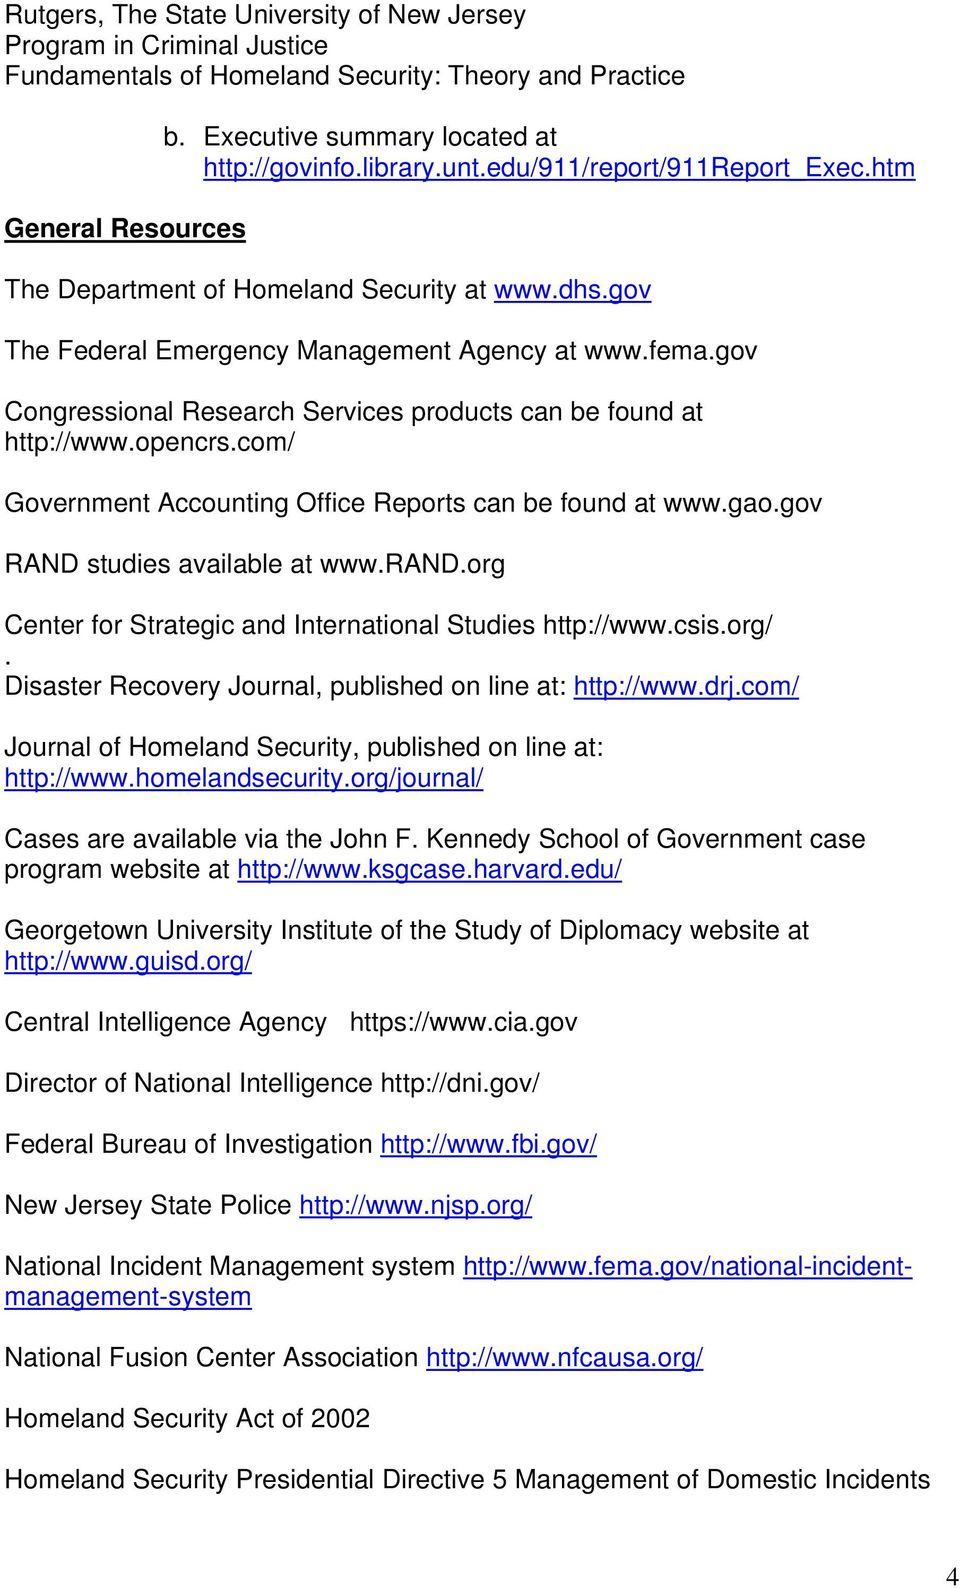 gao.gov RAND studies available at www.rand.org Center for Strategic International Studies http://www.csis.org/. Disaster Recovery Journal, published on line at: http://www.drj.